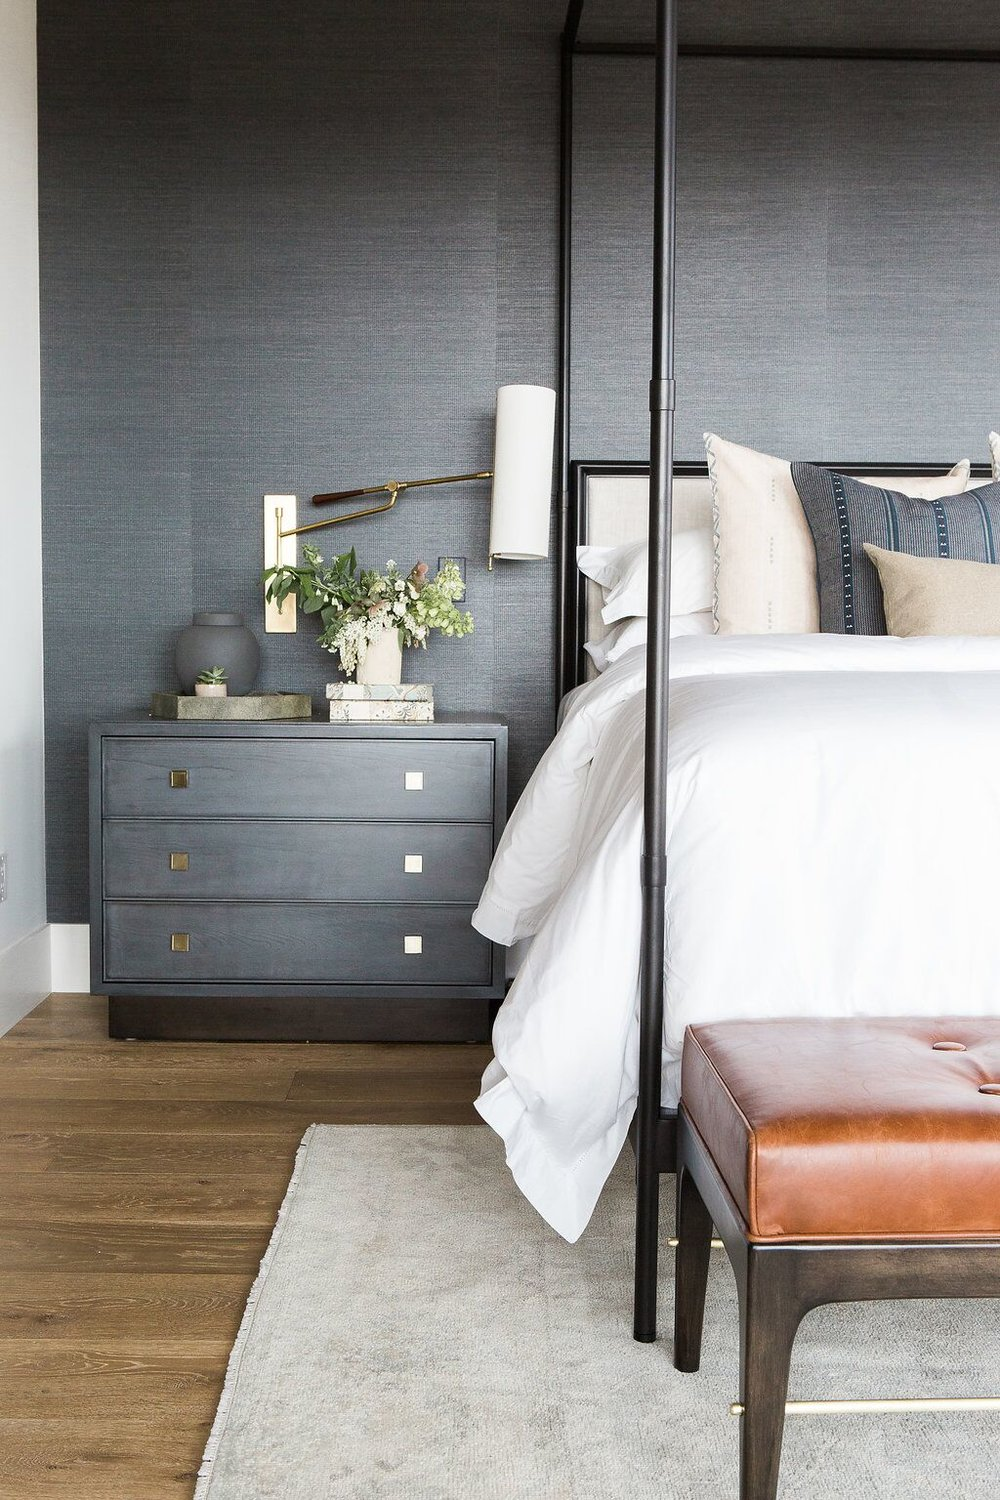 Small grey nightstand on other side of white bed